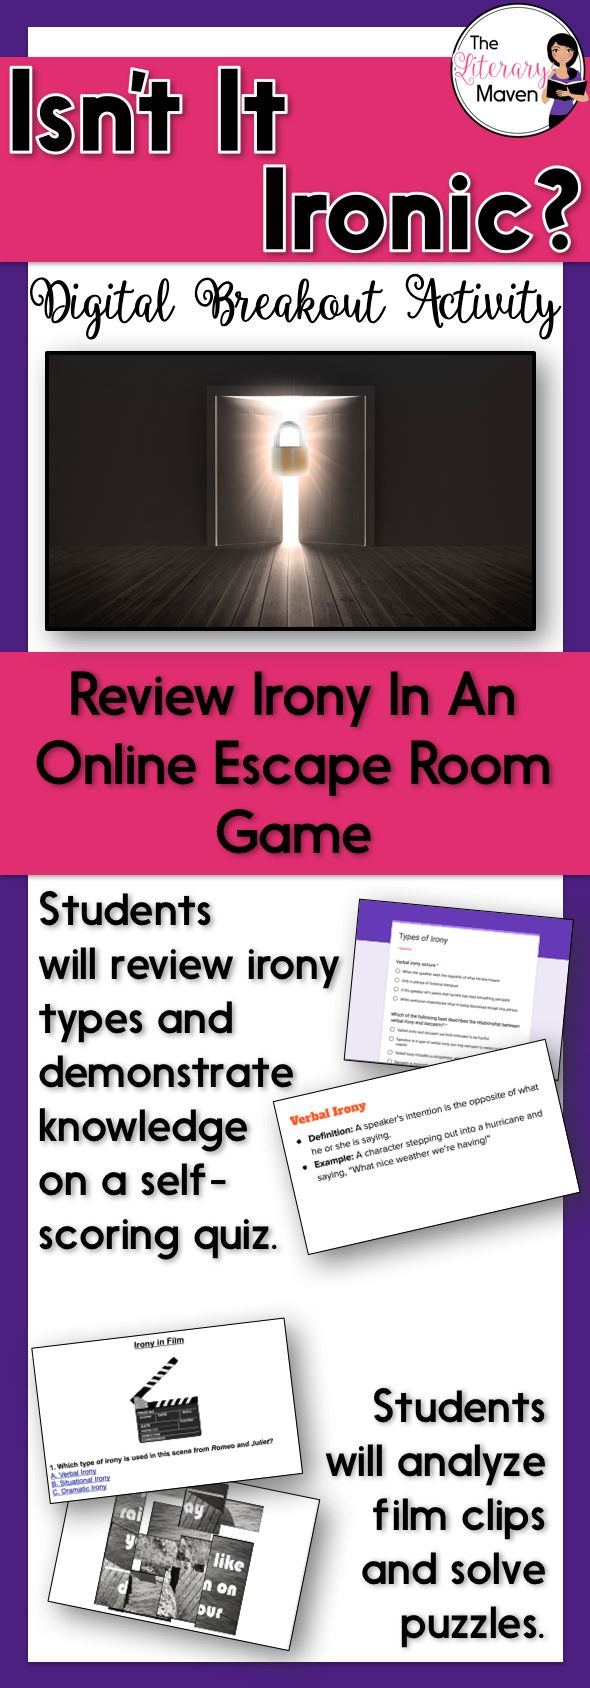 This digital breakout is intended for reinforcing the types of irony: verbal irony, situational irony, and dramatic irony. In this Escape Room-like game, students will interact with a variety of text and media to find the codes that will unlock a series of locks. This unique activity will require students to think creatively and work collaboratively.